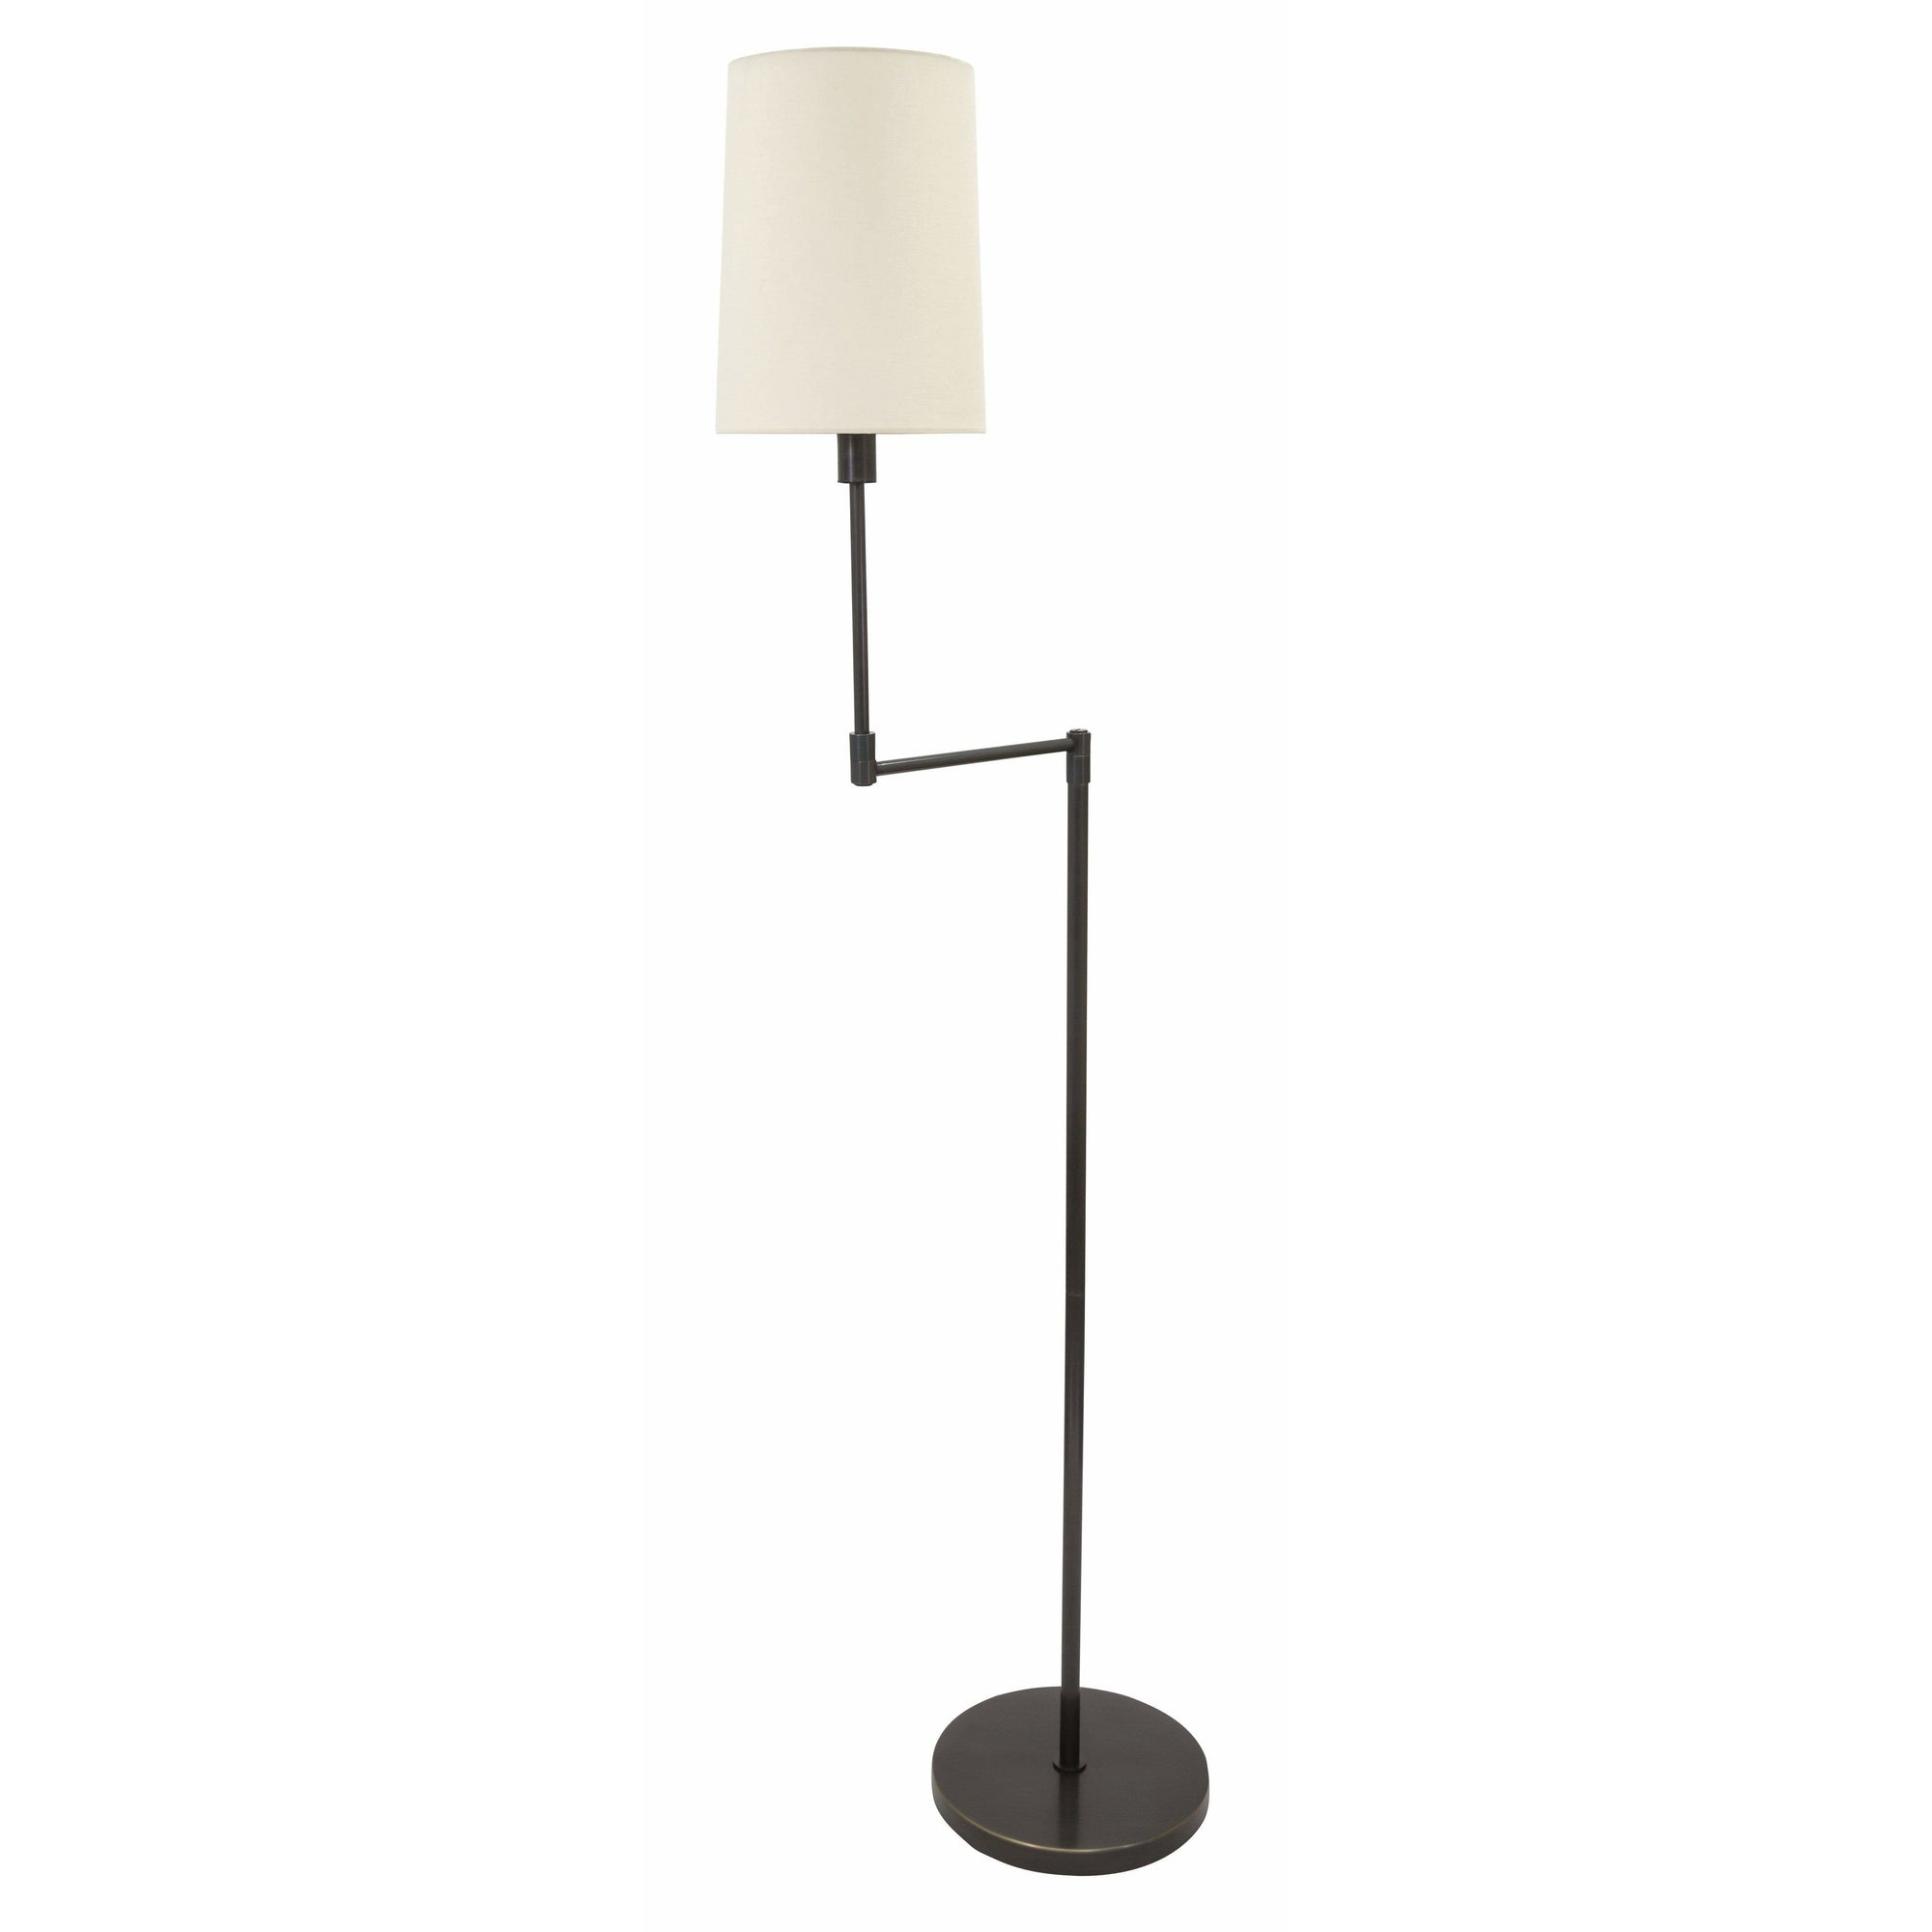 House Of Troy Floor Lamps Wolcott Floor Lamp by House Of Troy WOL400-OB